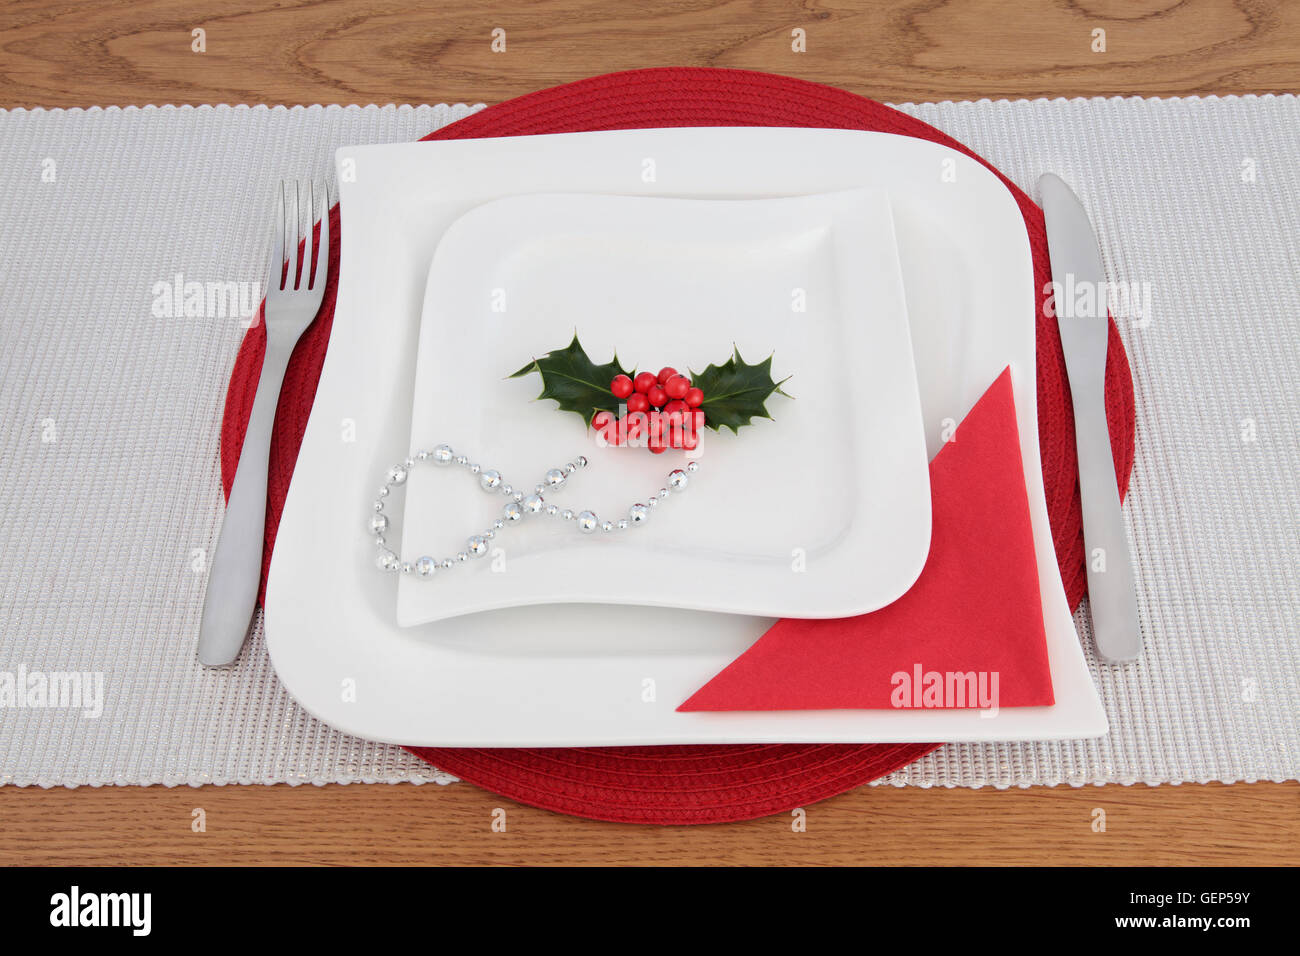 Modern christmas table setting with square wave porcelain plates stainless steel cutlery red napkin and silver bead chain. & Modern christmas table setting with square wave porcelain plates ...